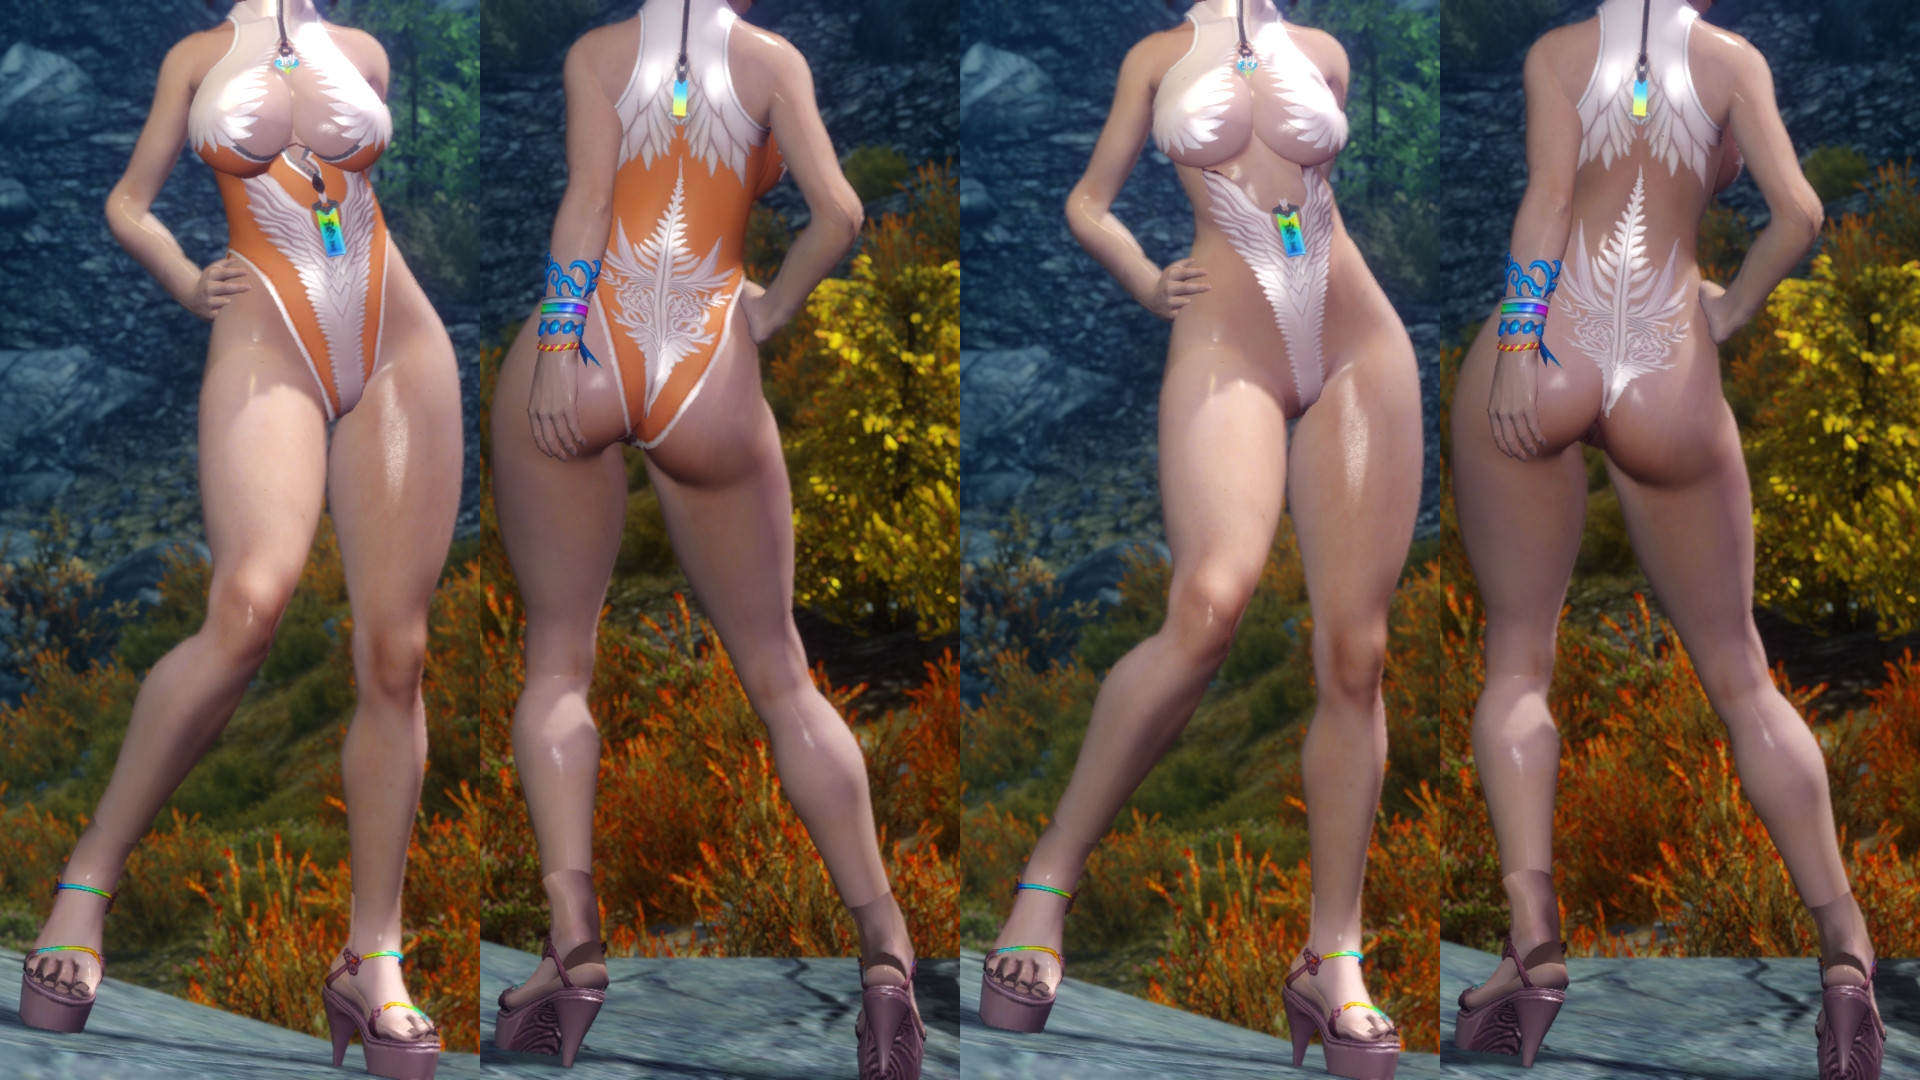 Blade and soul nude mod uncensored hentay video